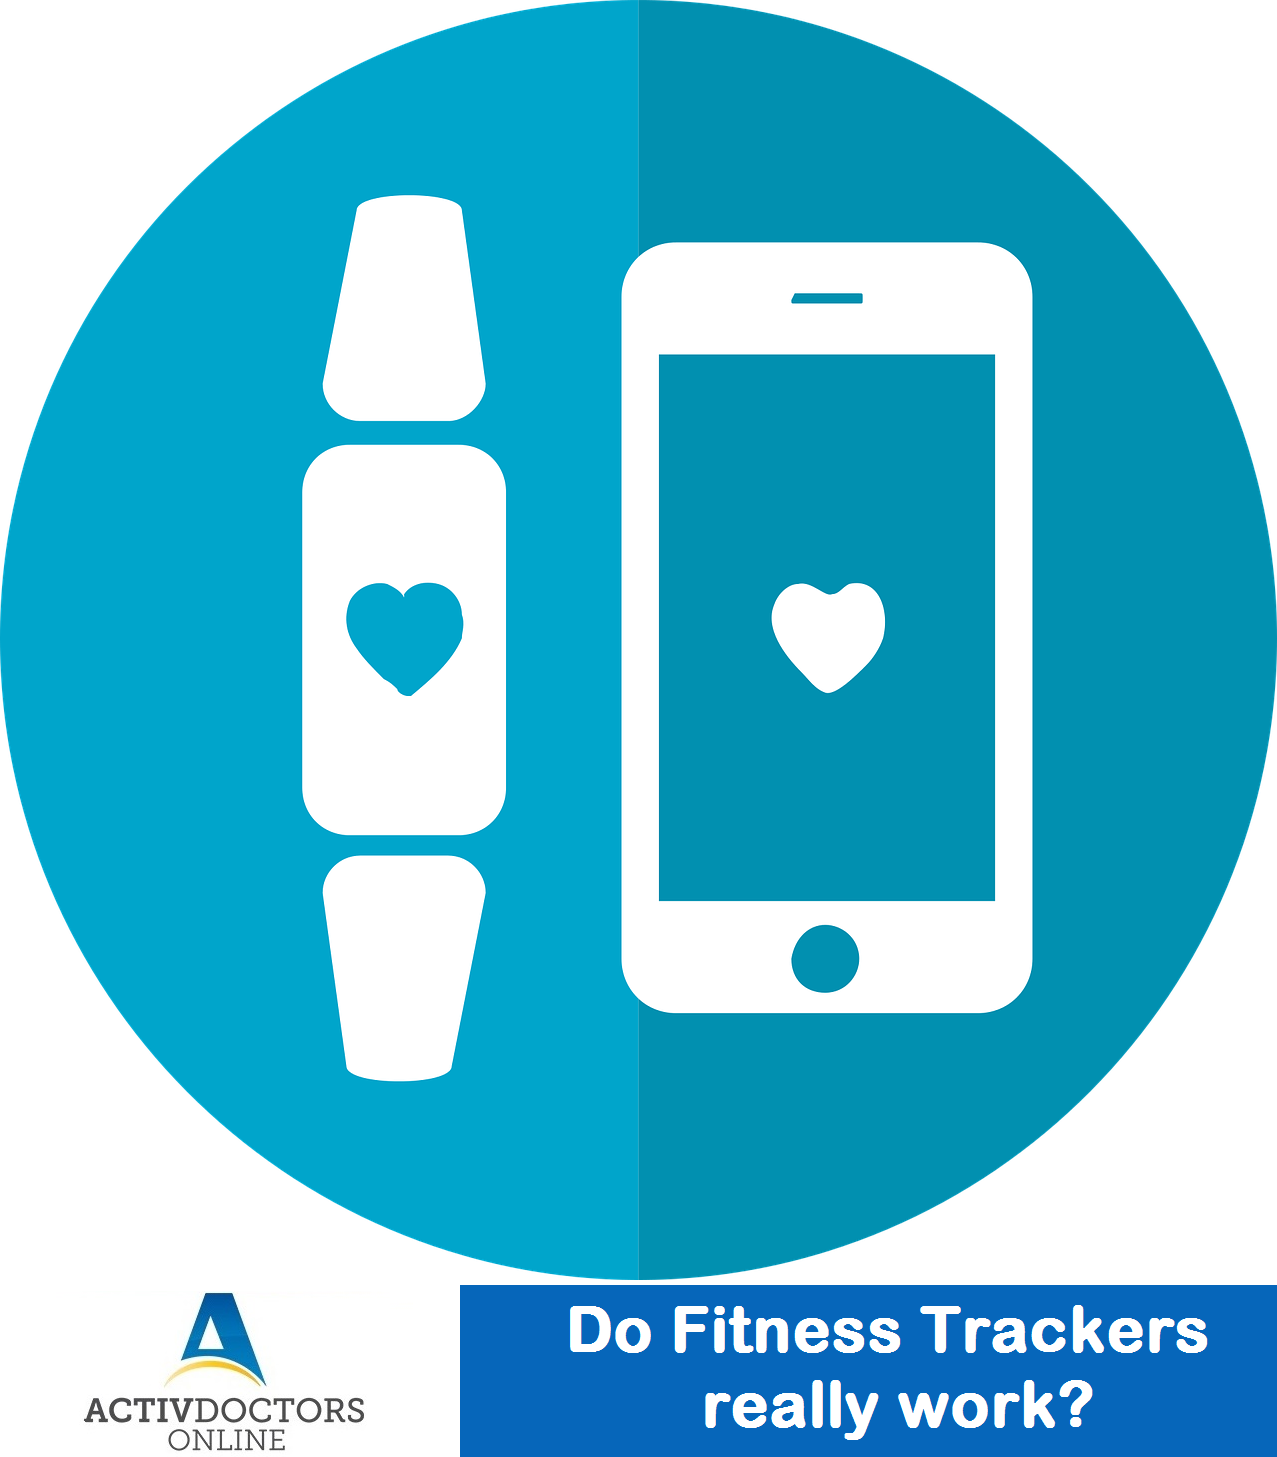 Do Fitness Trackers really work?